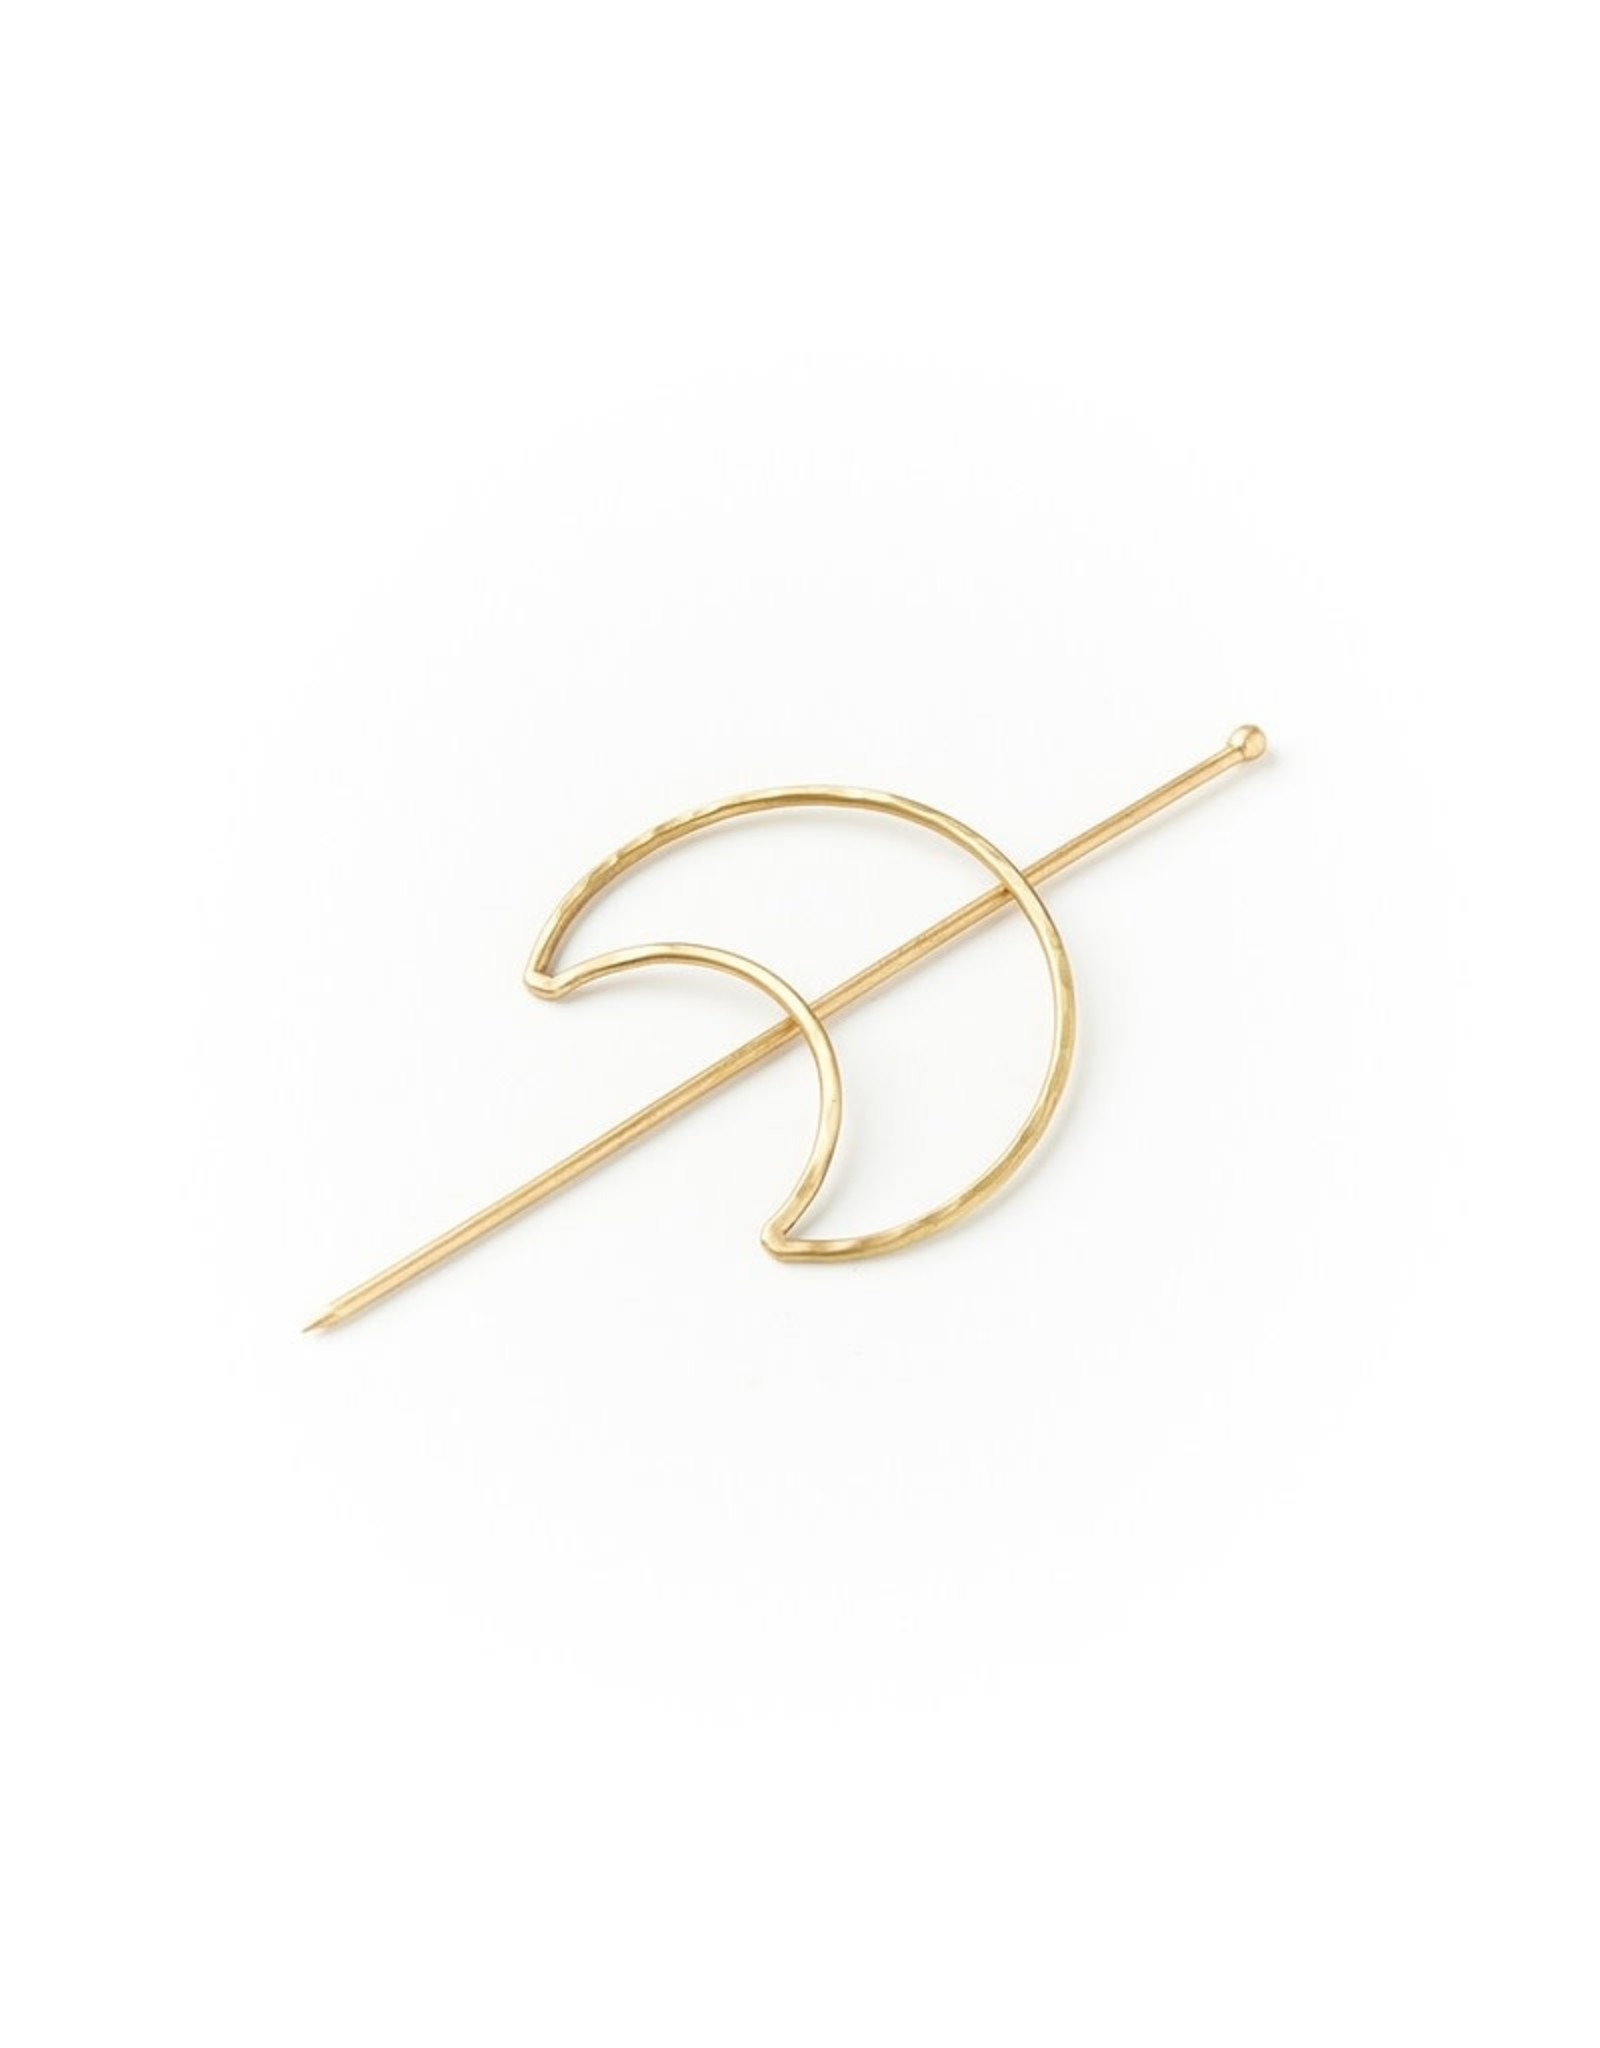 Indukala Crescent Hair Hoop or Scarf Pin, India